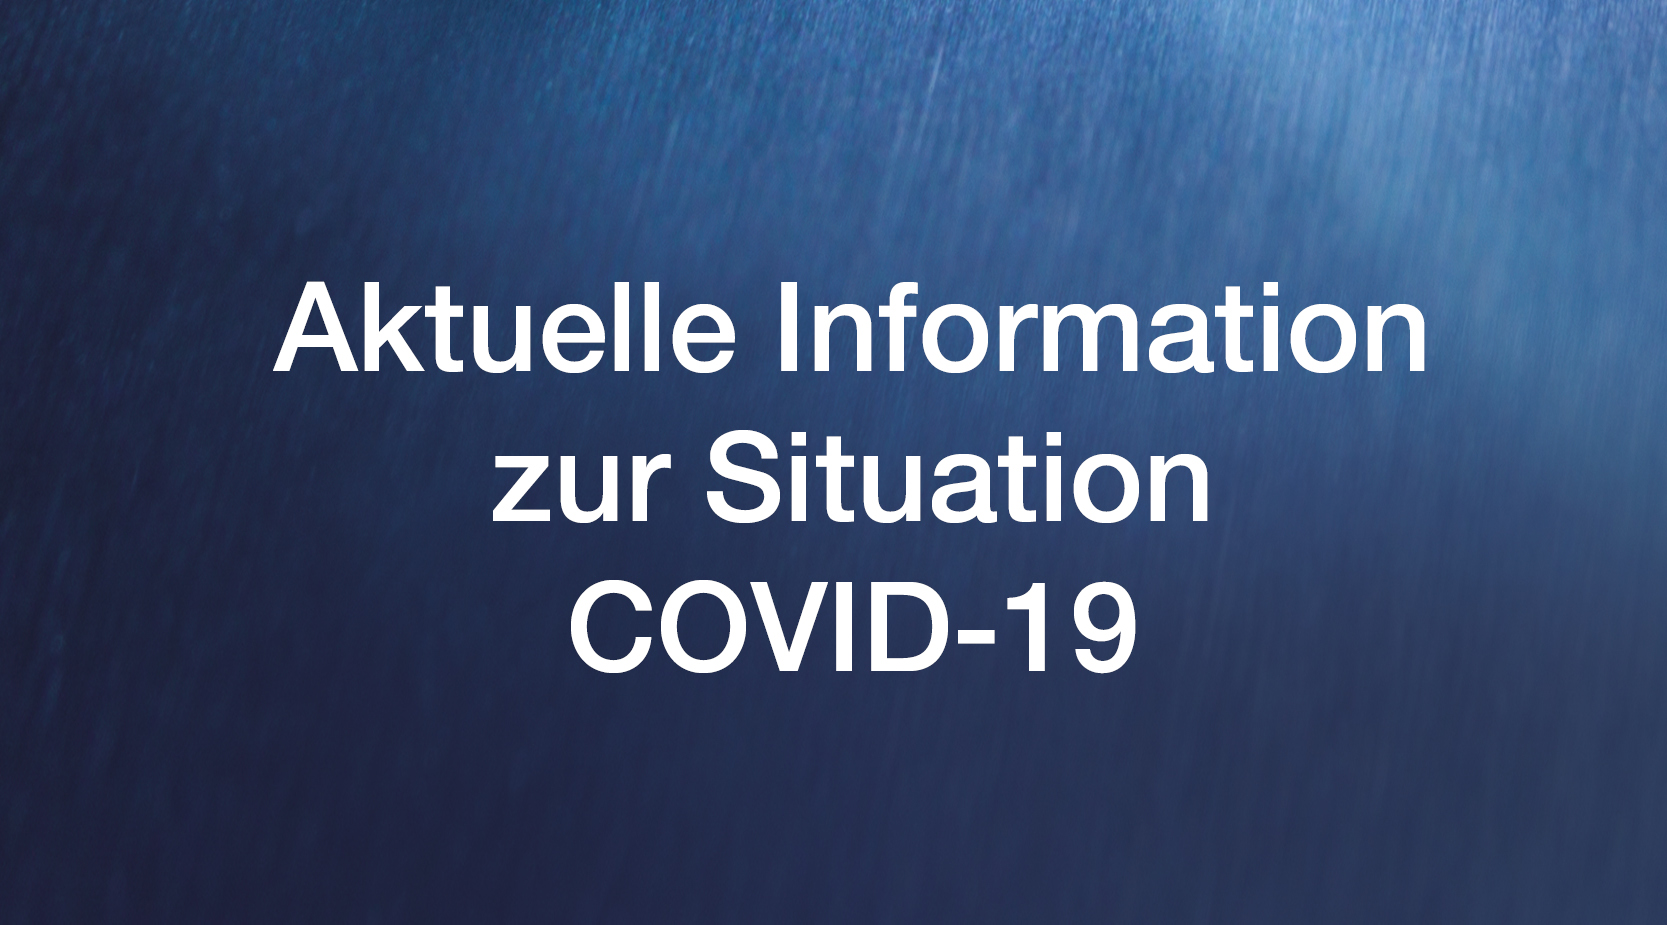 Aktuelle Information zur Situation COVID-19